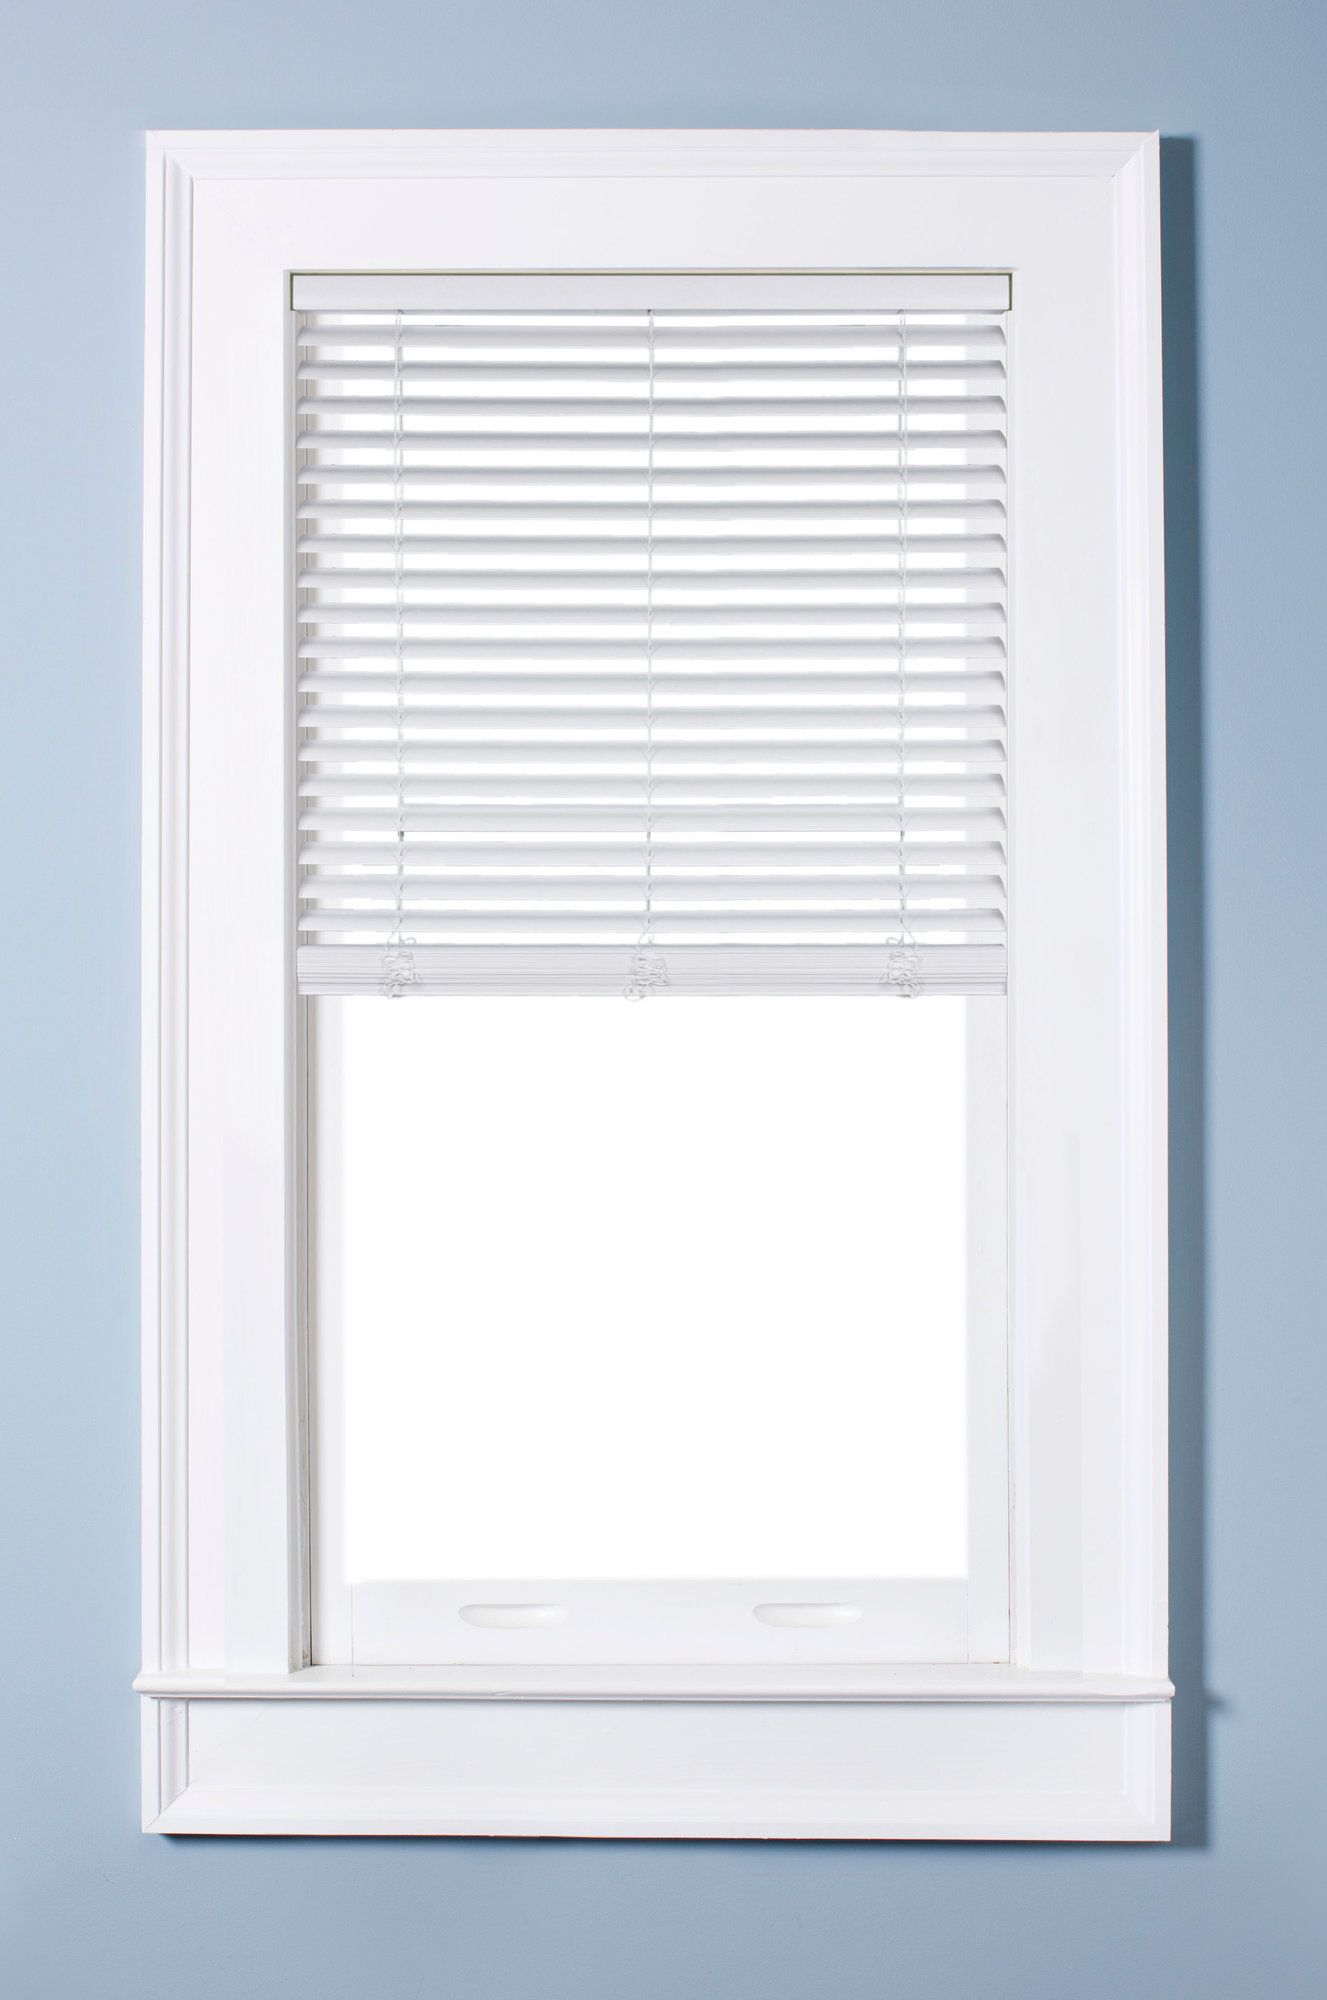 blind jcpenney levelor cordless for wood interior shades decoration kirsch perceptions design repair window blinds faux levol cellular modern lowes levolor pretty